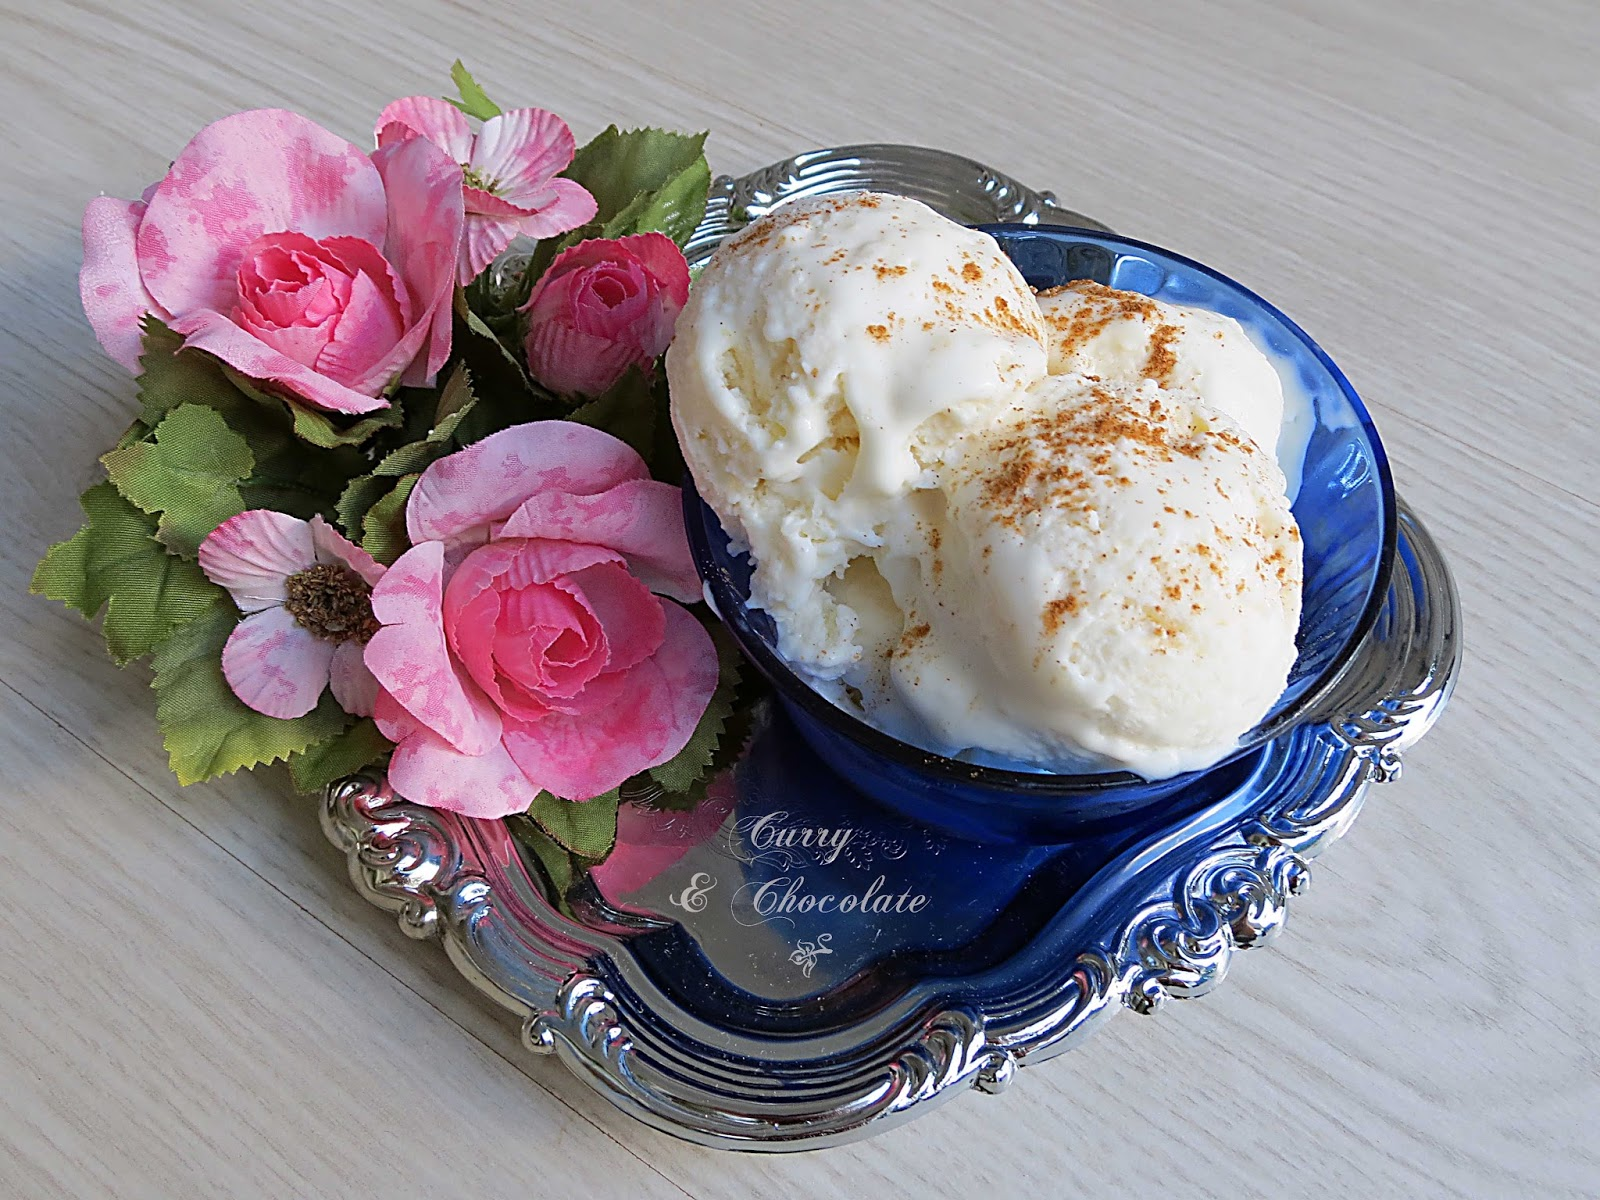 Helado casero de arroz con leche – Sweet rice pudding ice cream